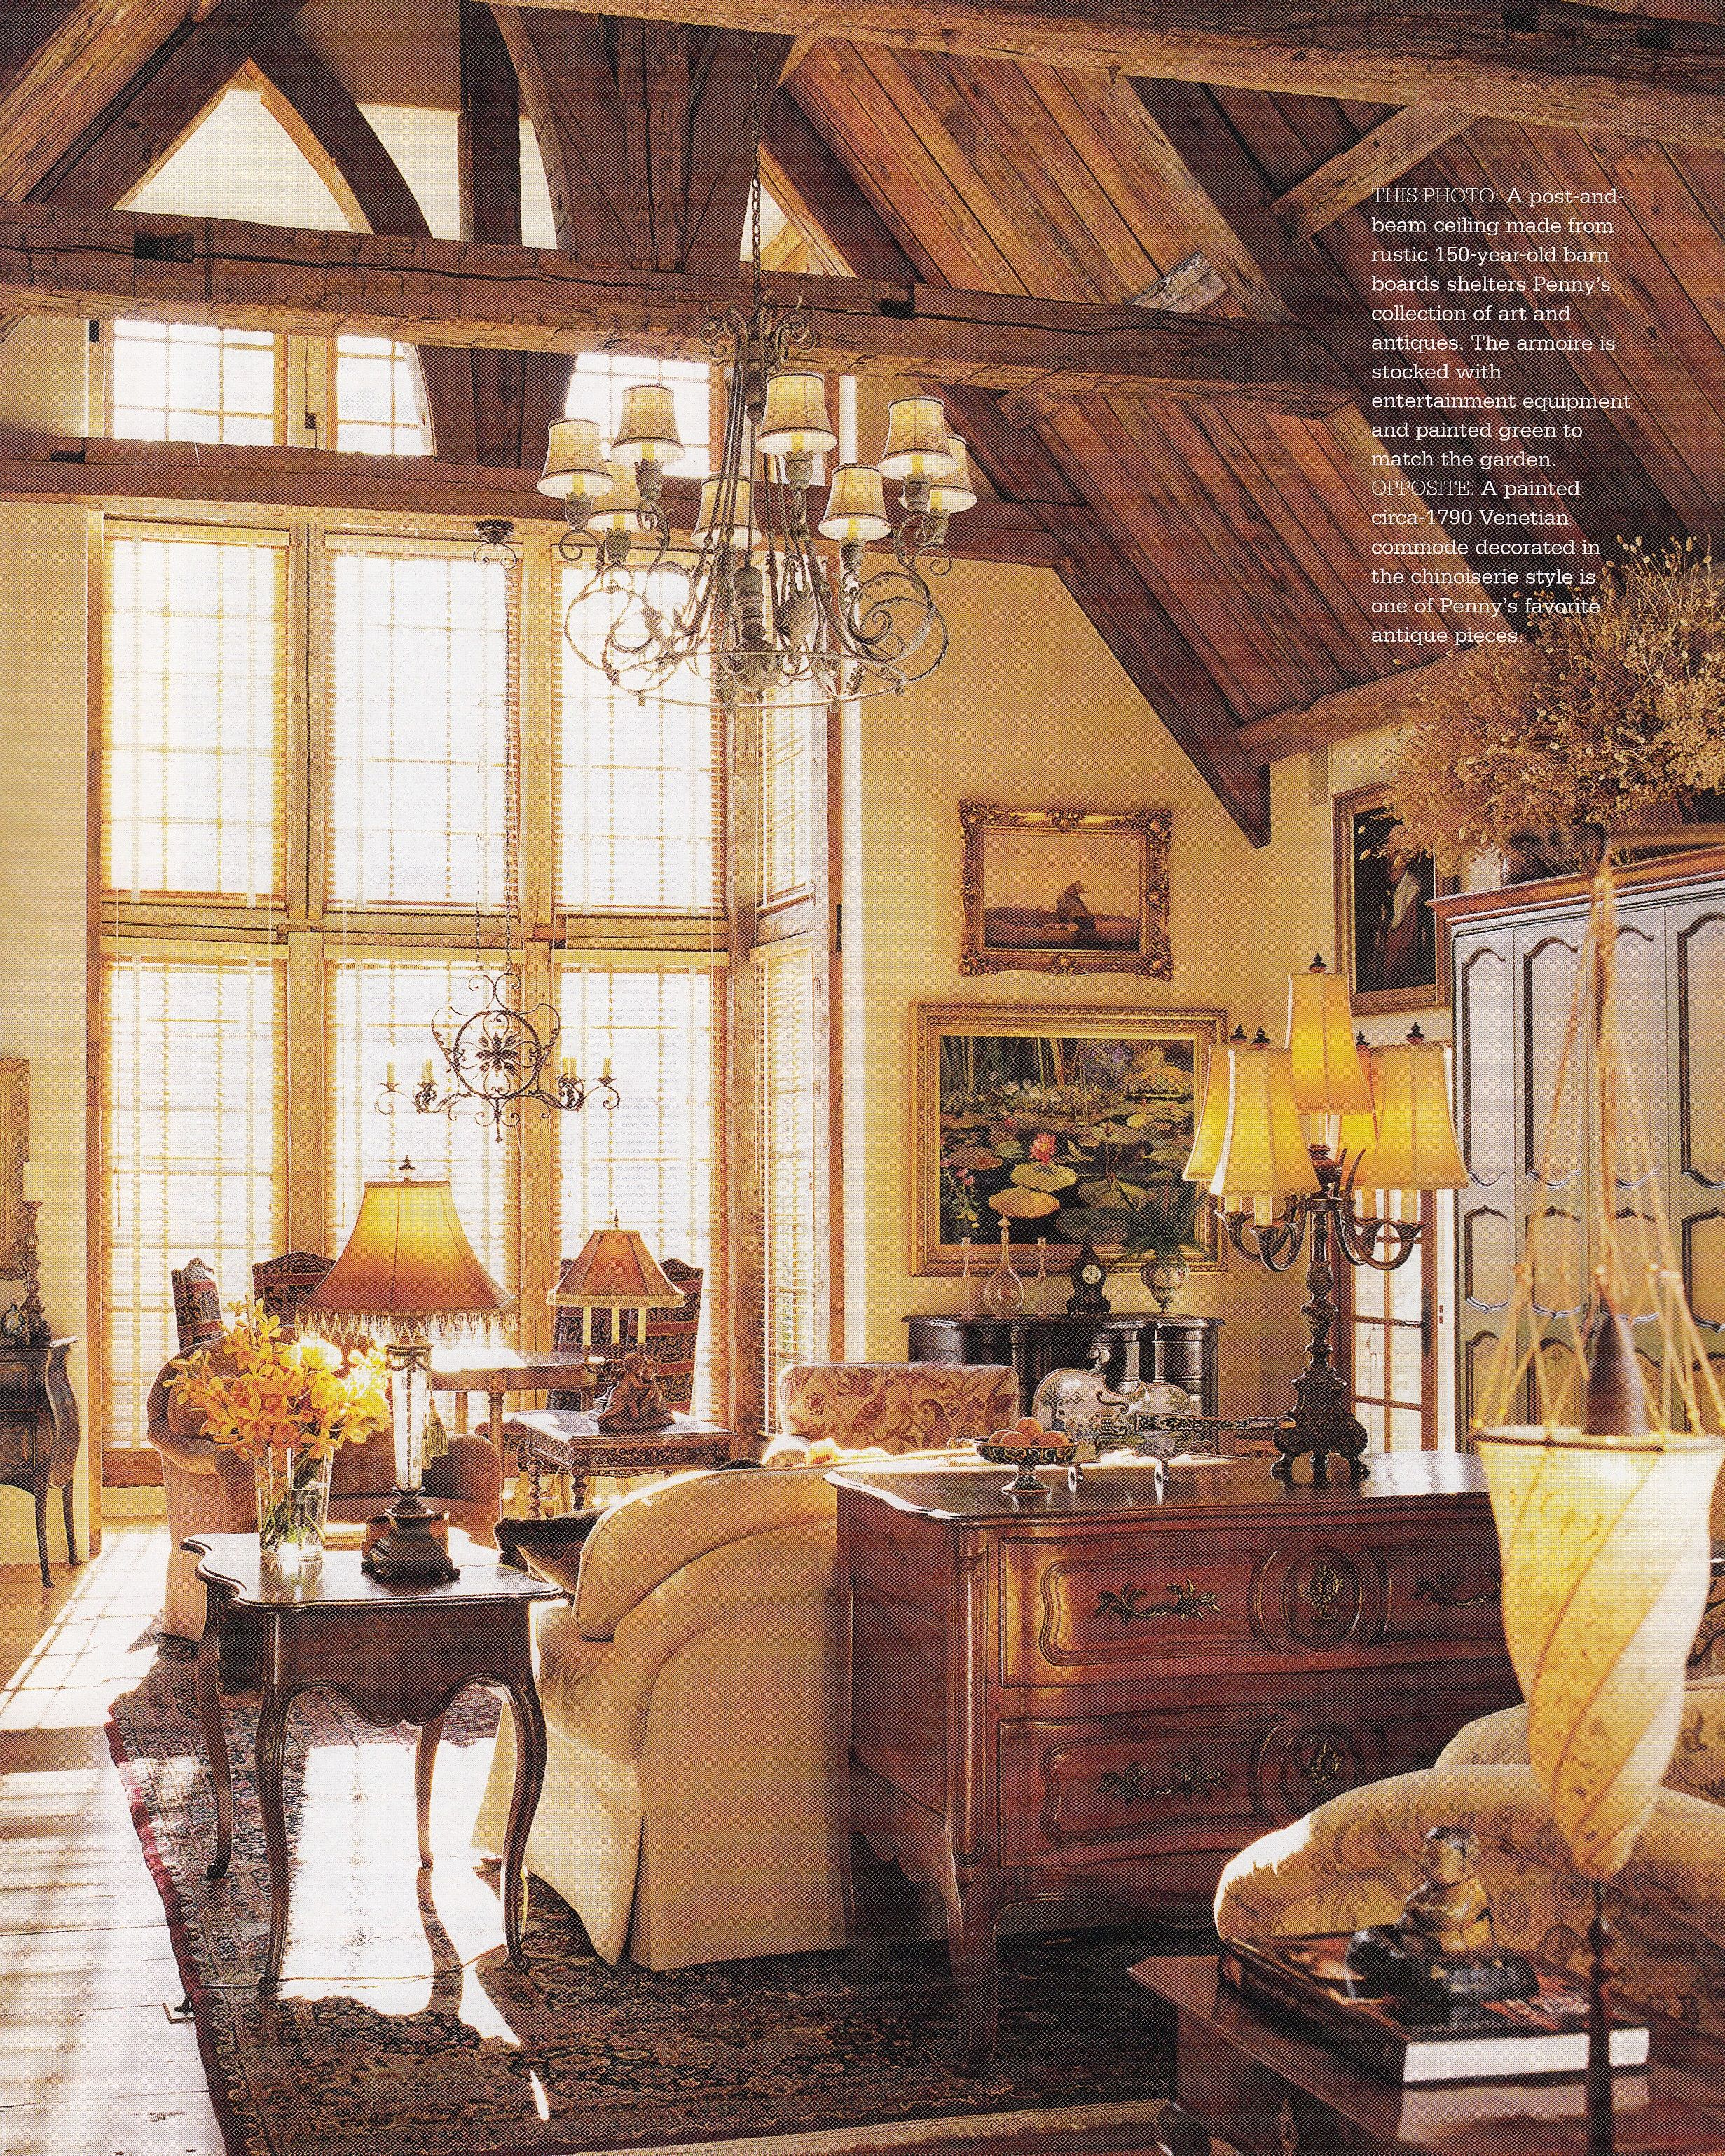 Oregon residence interior design donna wolf architect jeffrey miller published country french decorating by better homes gardens spring summer also rh pinterest